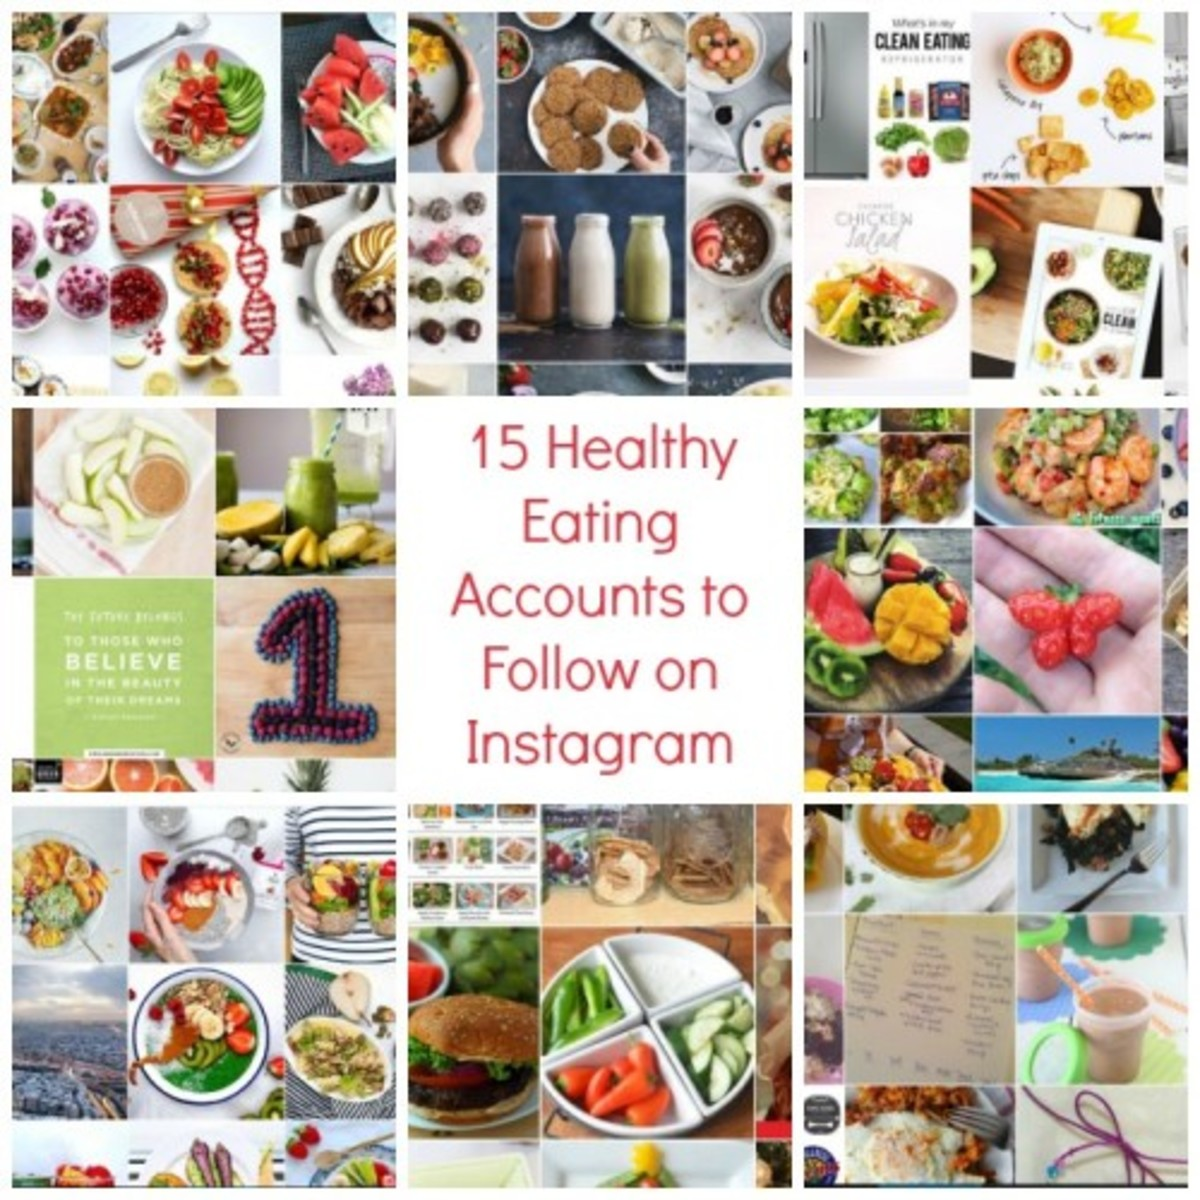 15 Healthy Eating Accounts to Follow on Instagram